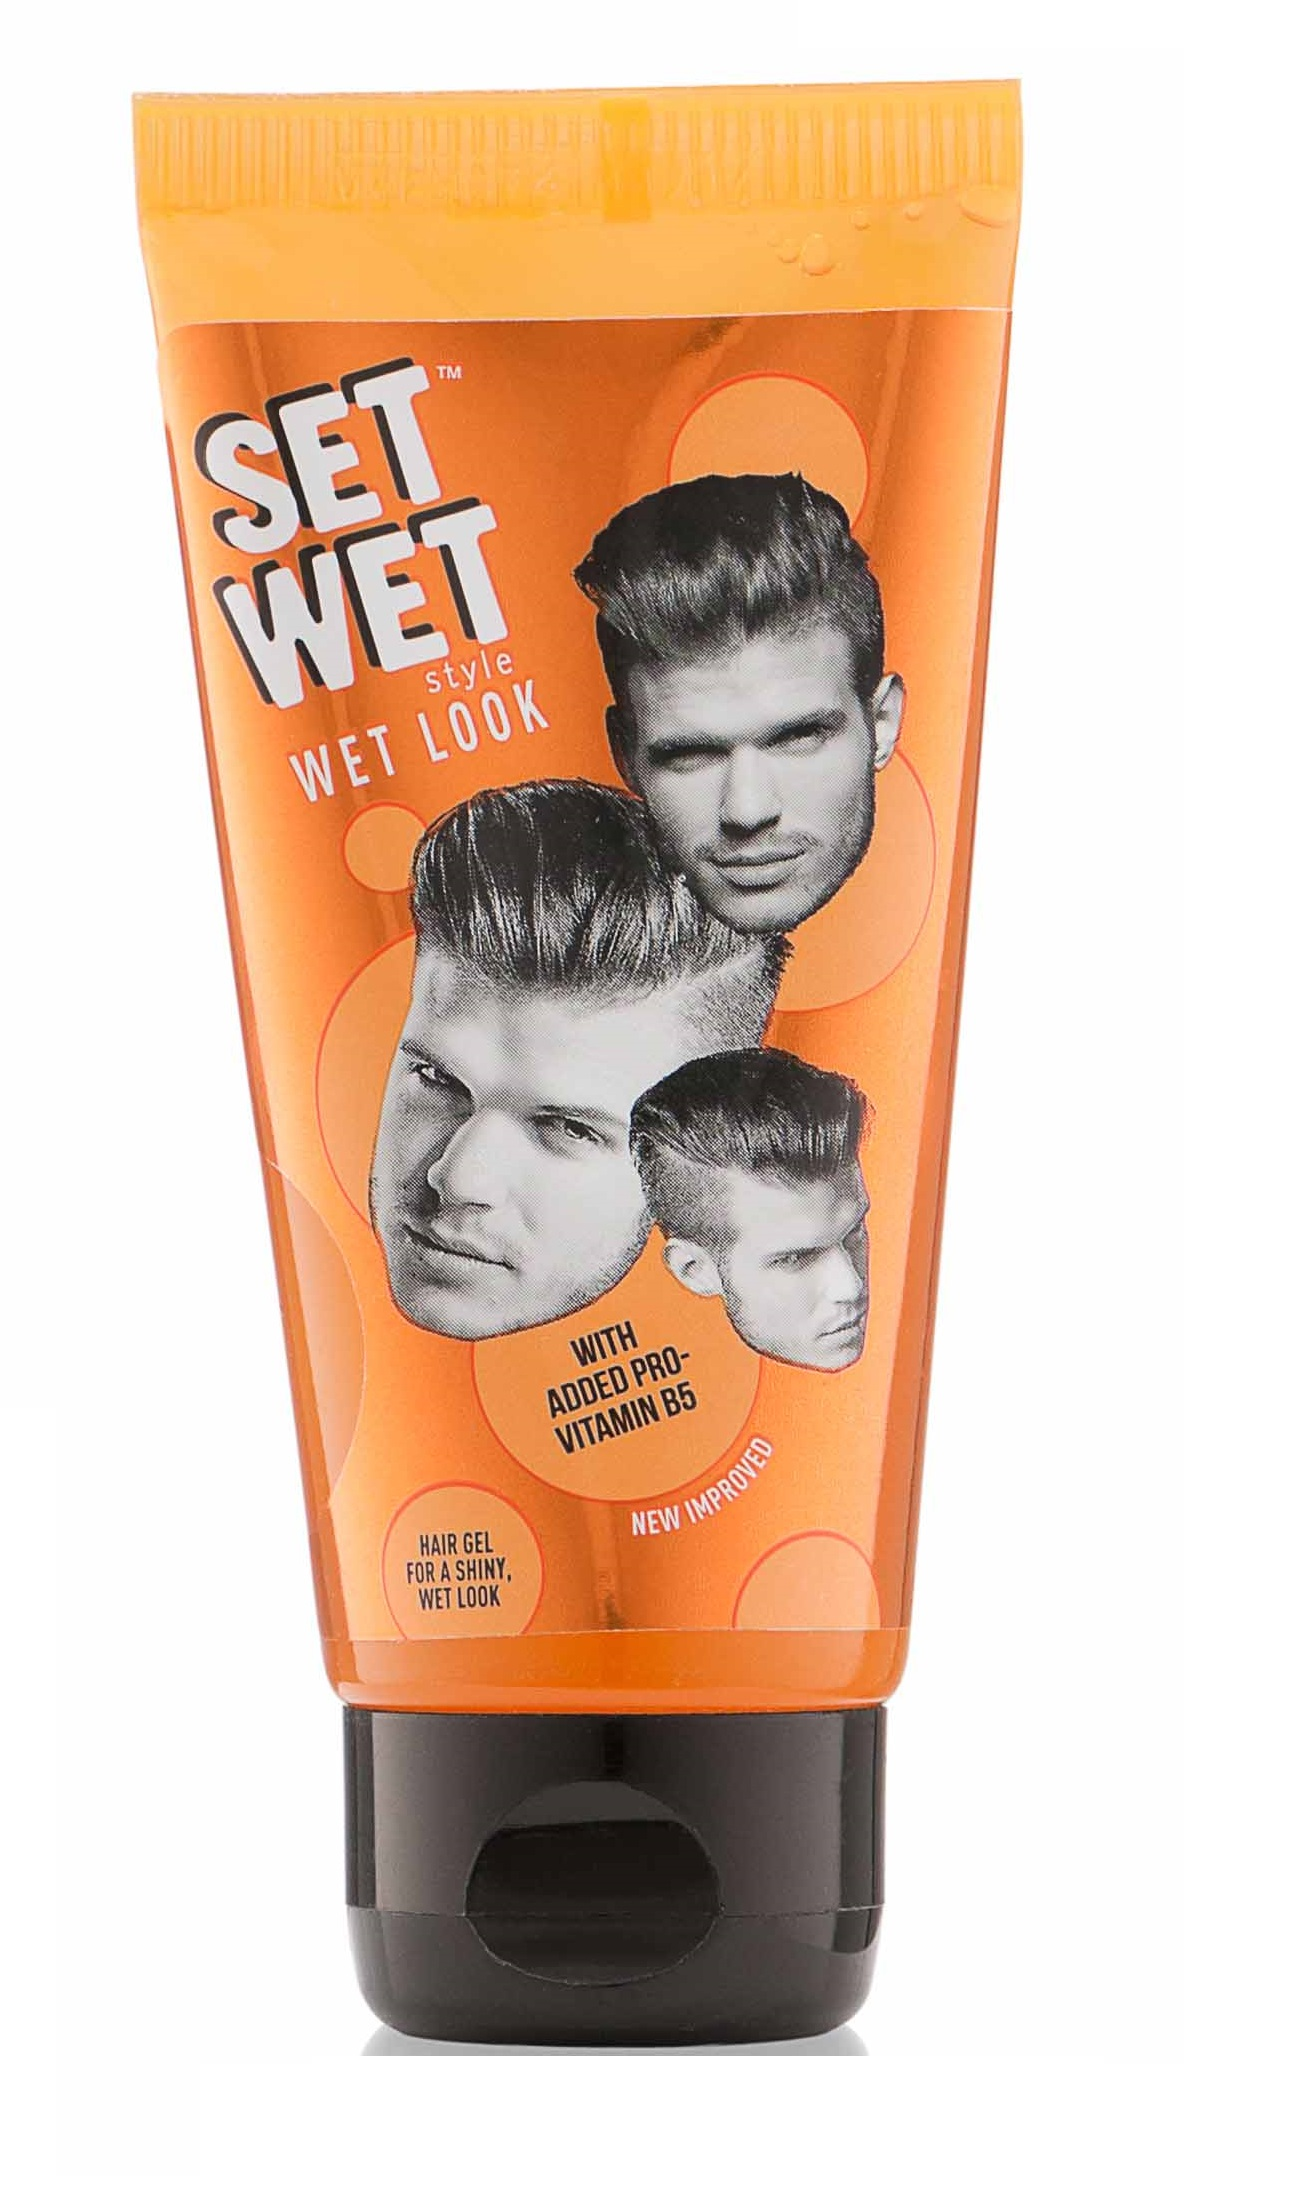 Set Wet Style Wet Look Gel  available at Nykaa for Rs.40